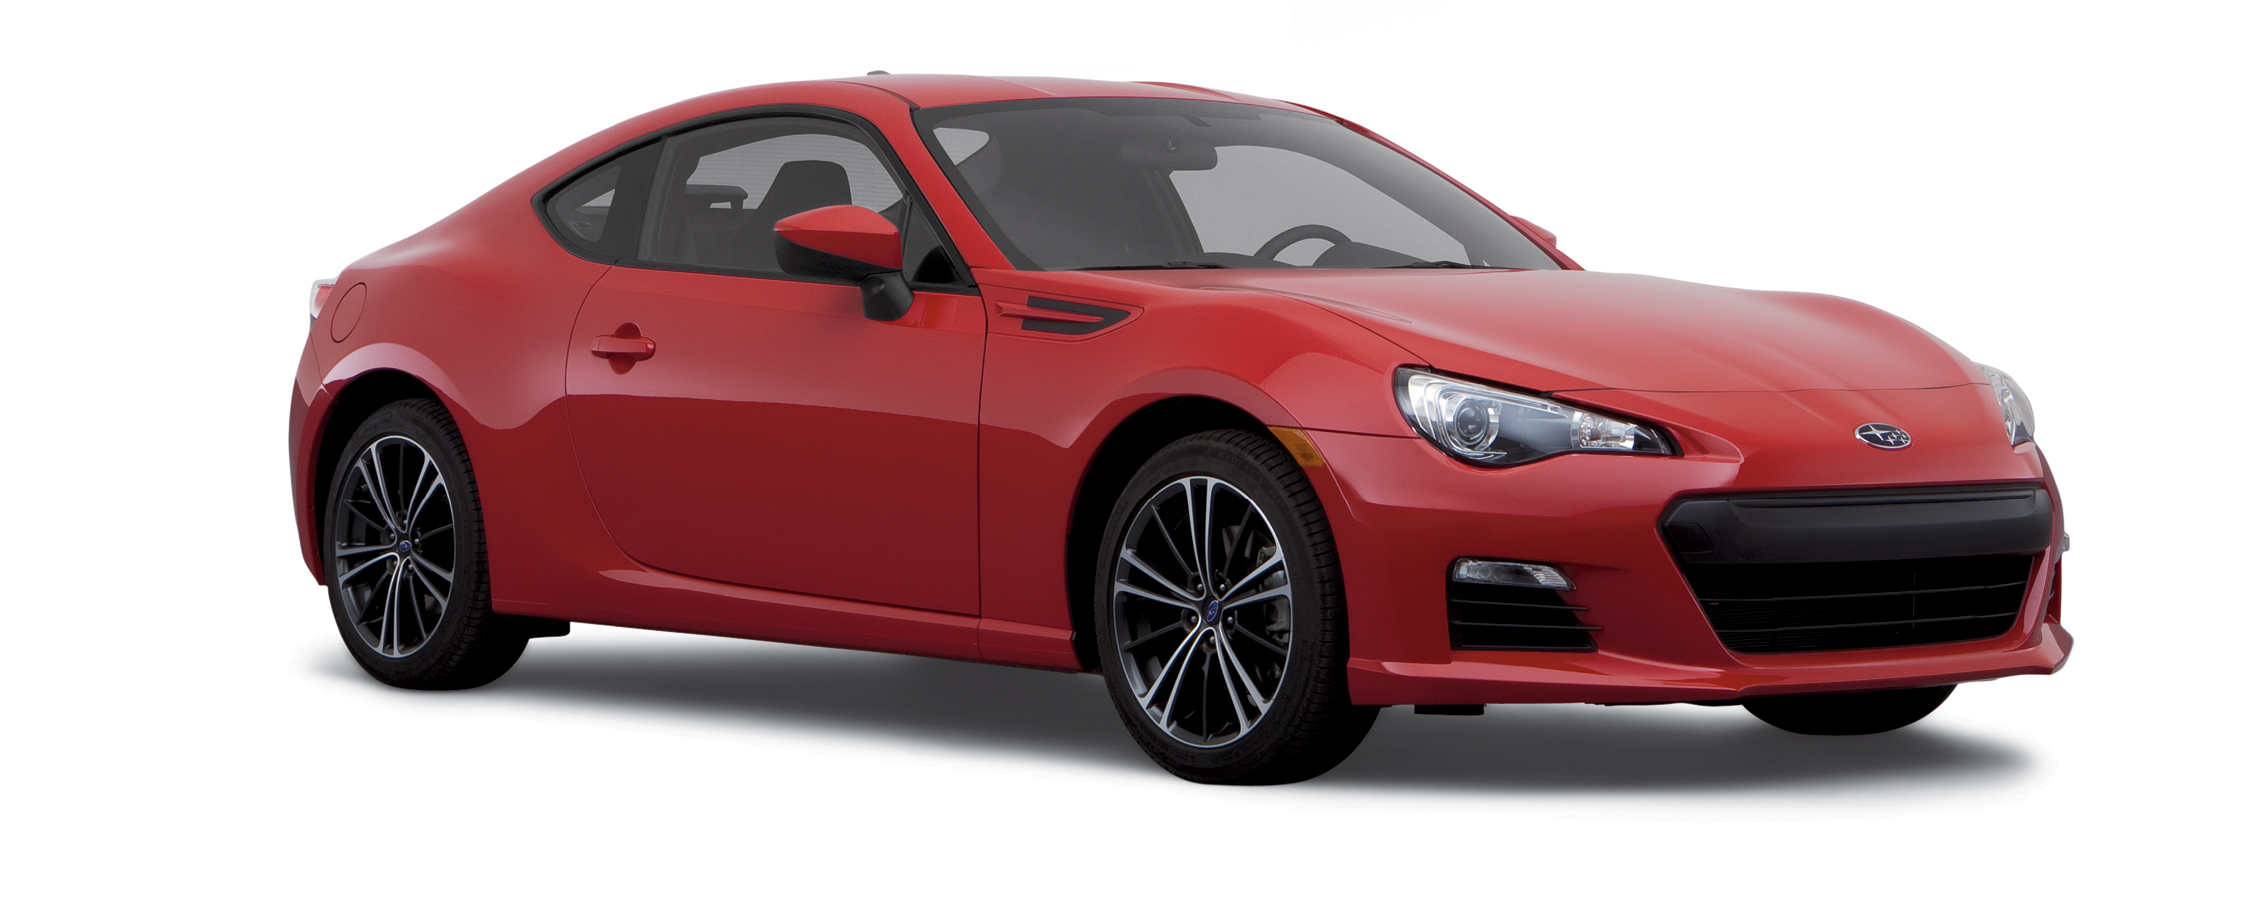 2016 subaru brz review carfax. Black Bedroom Furniture Sets. Home Design Ideas